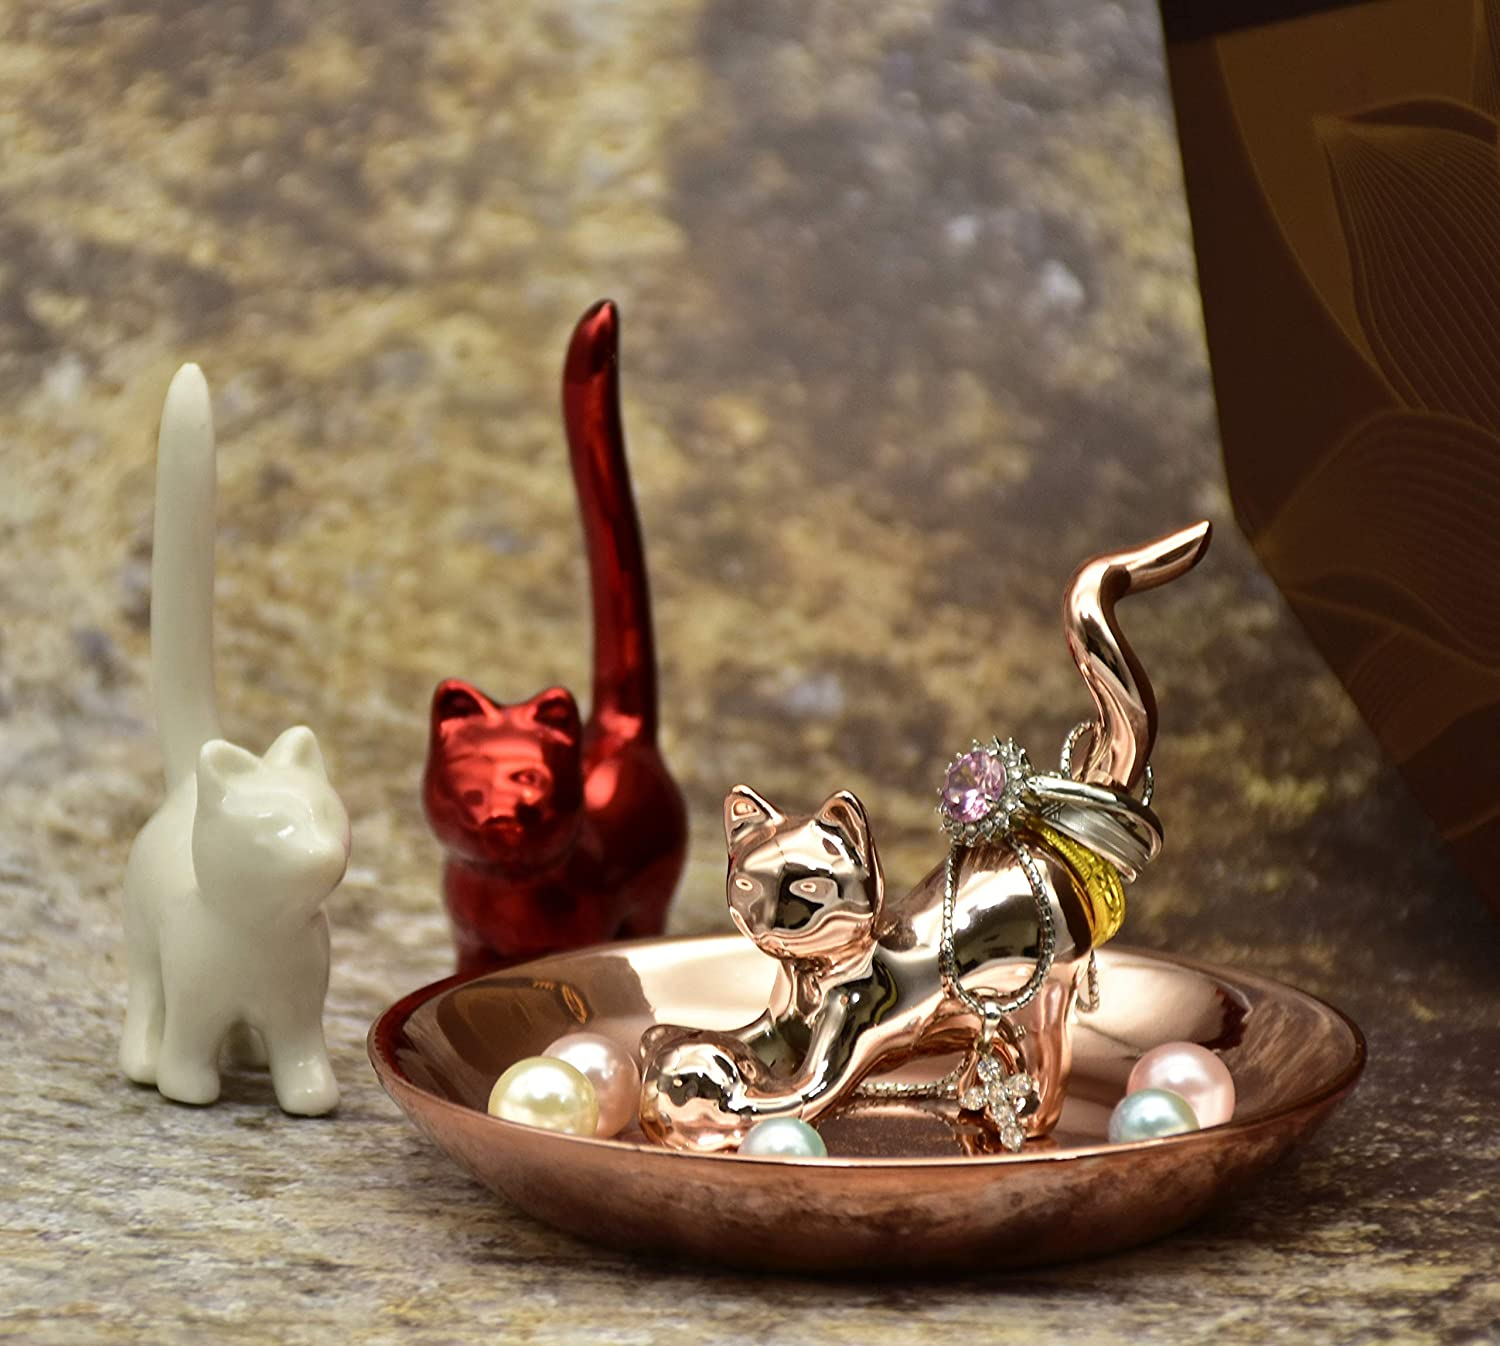 Gift for Women Birthday Wedding Jewelry Display Fancy Cat Jewelry Holder Ceramic Ring Trinket Dish Rose Gold Color Tray